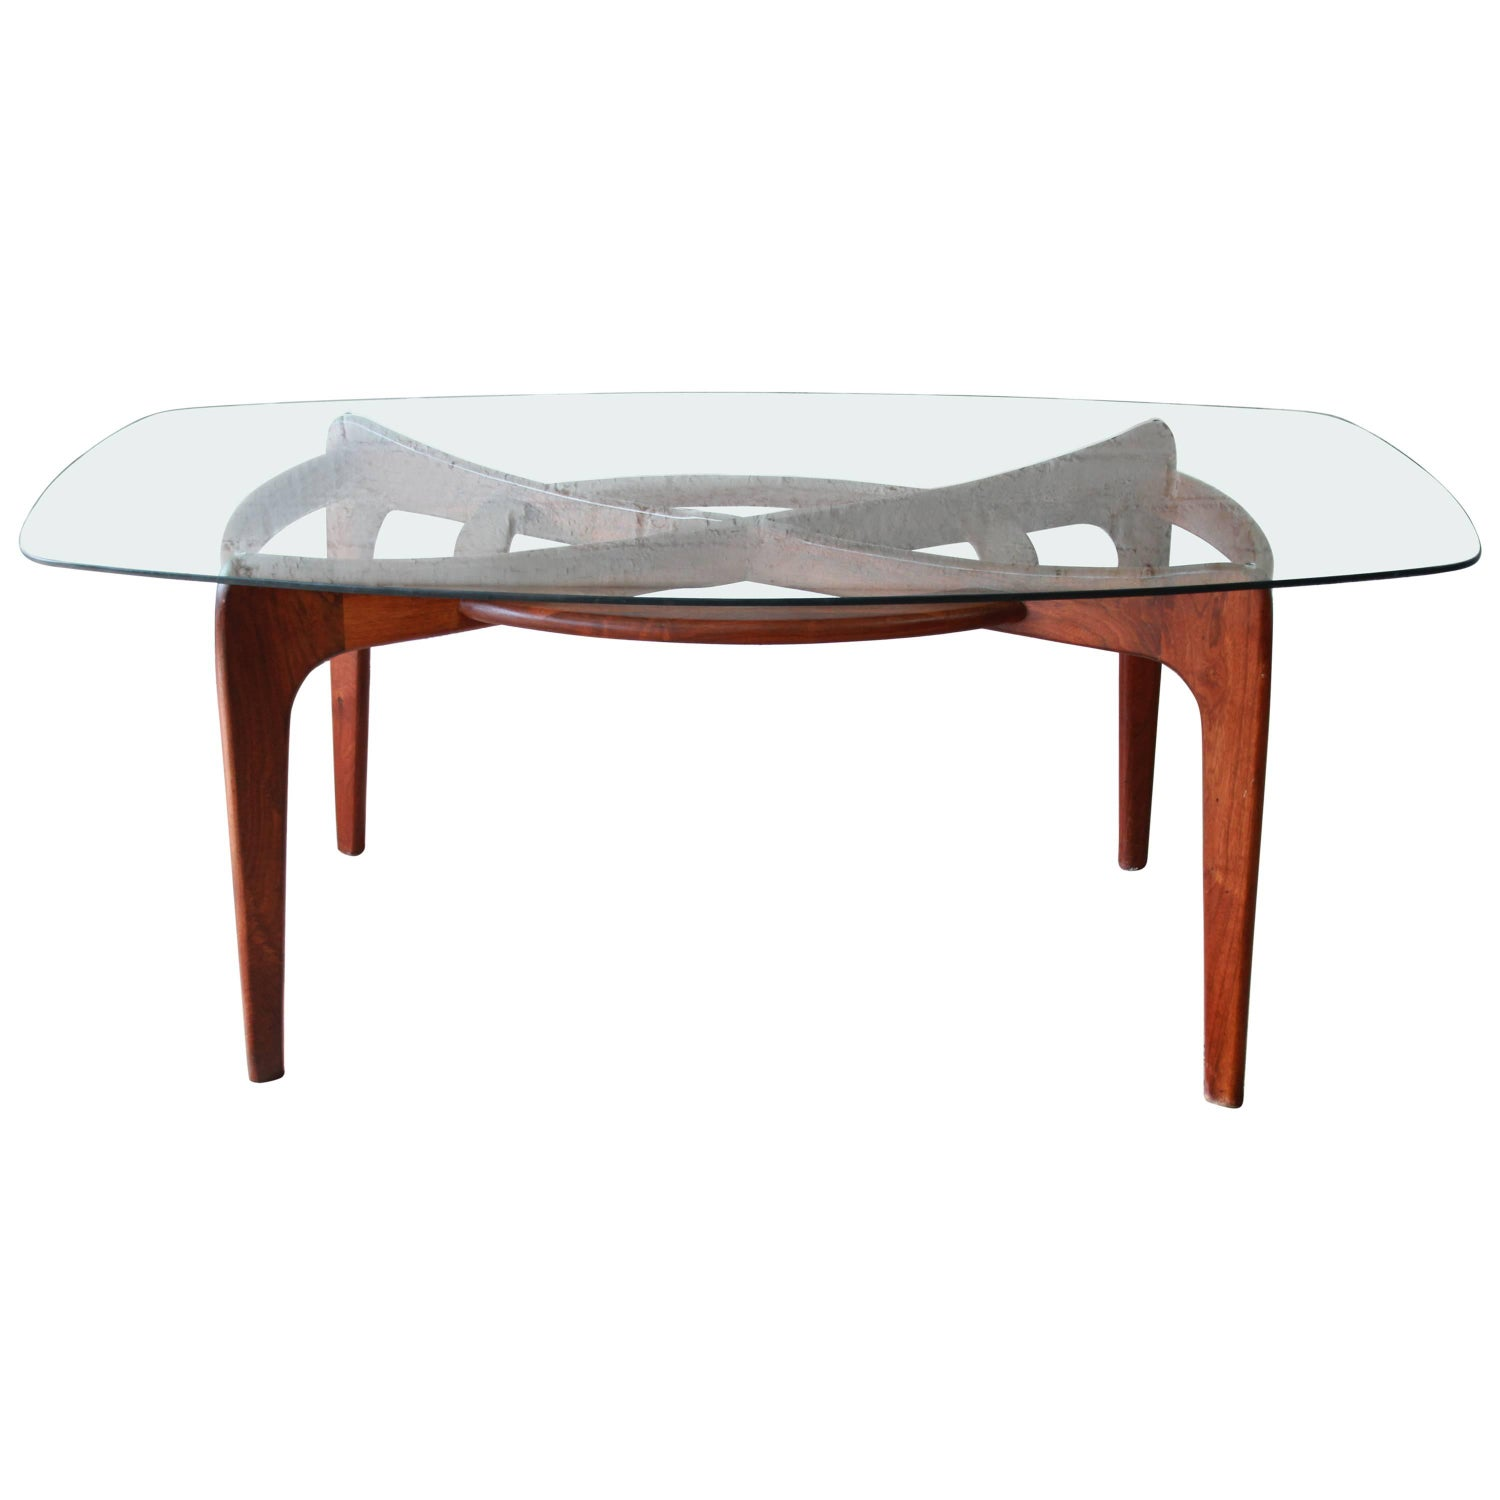 Adrian pearsall tables 99 for sale at 1stdibs adrian pearsall for craft associates sculpted walnut and glass dining table geotapseo Choice Image